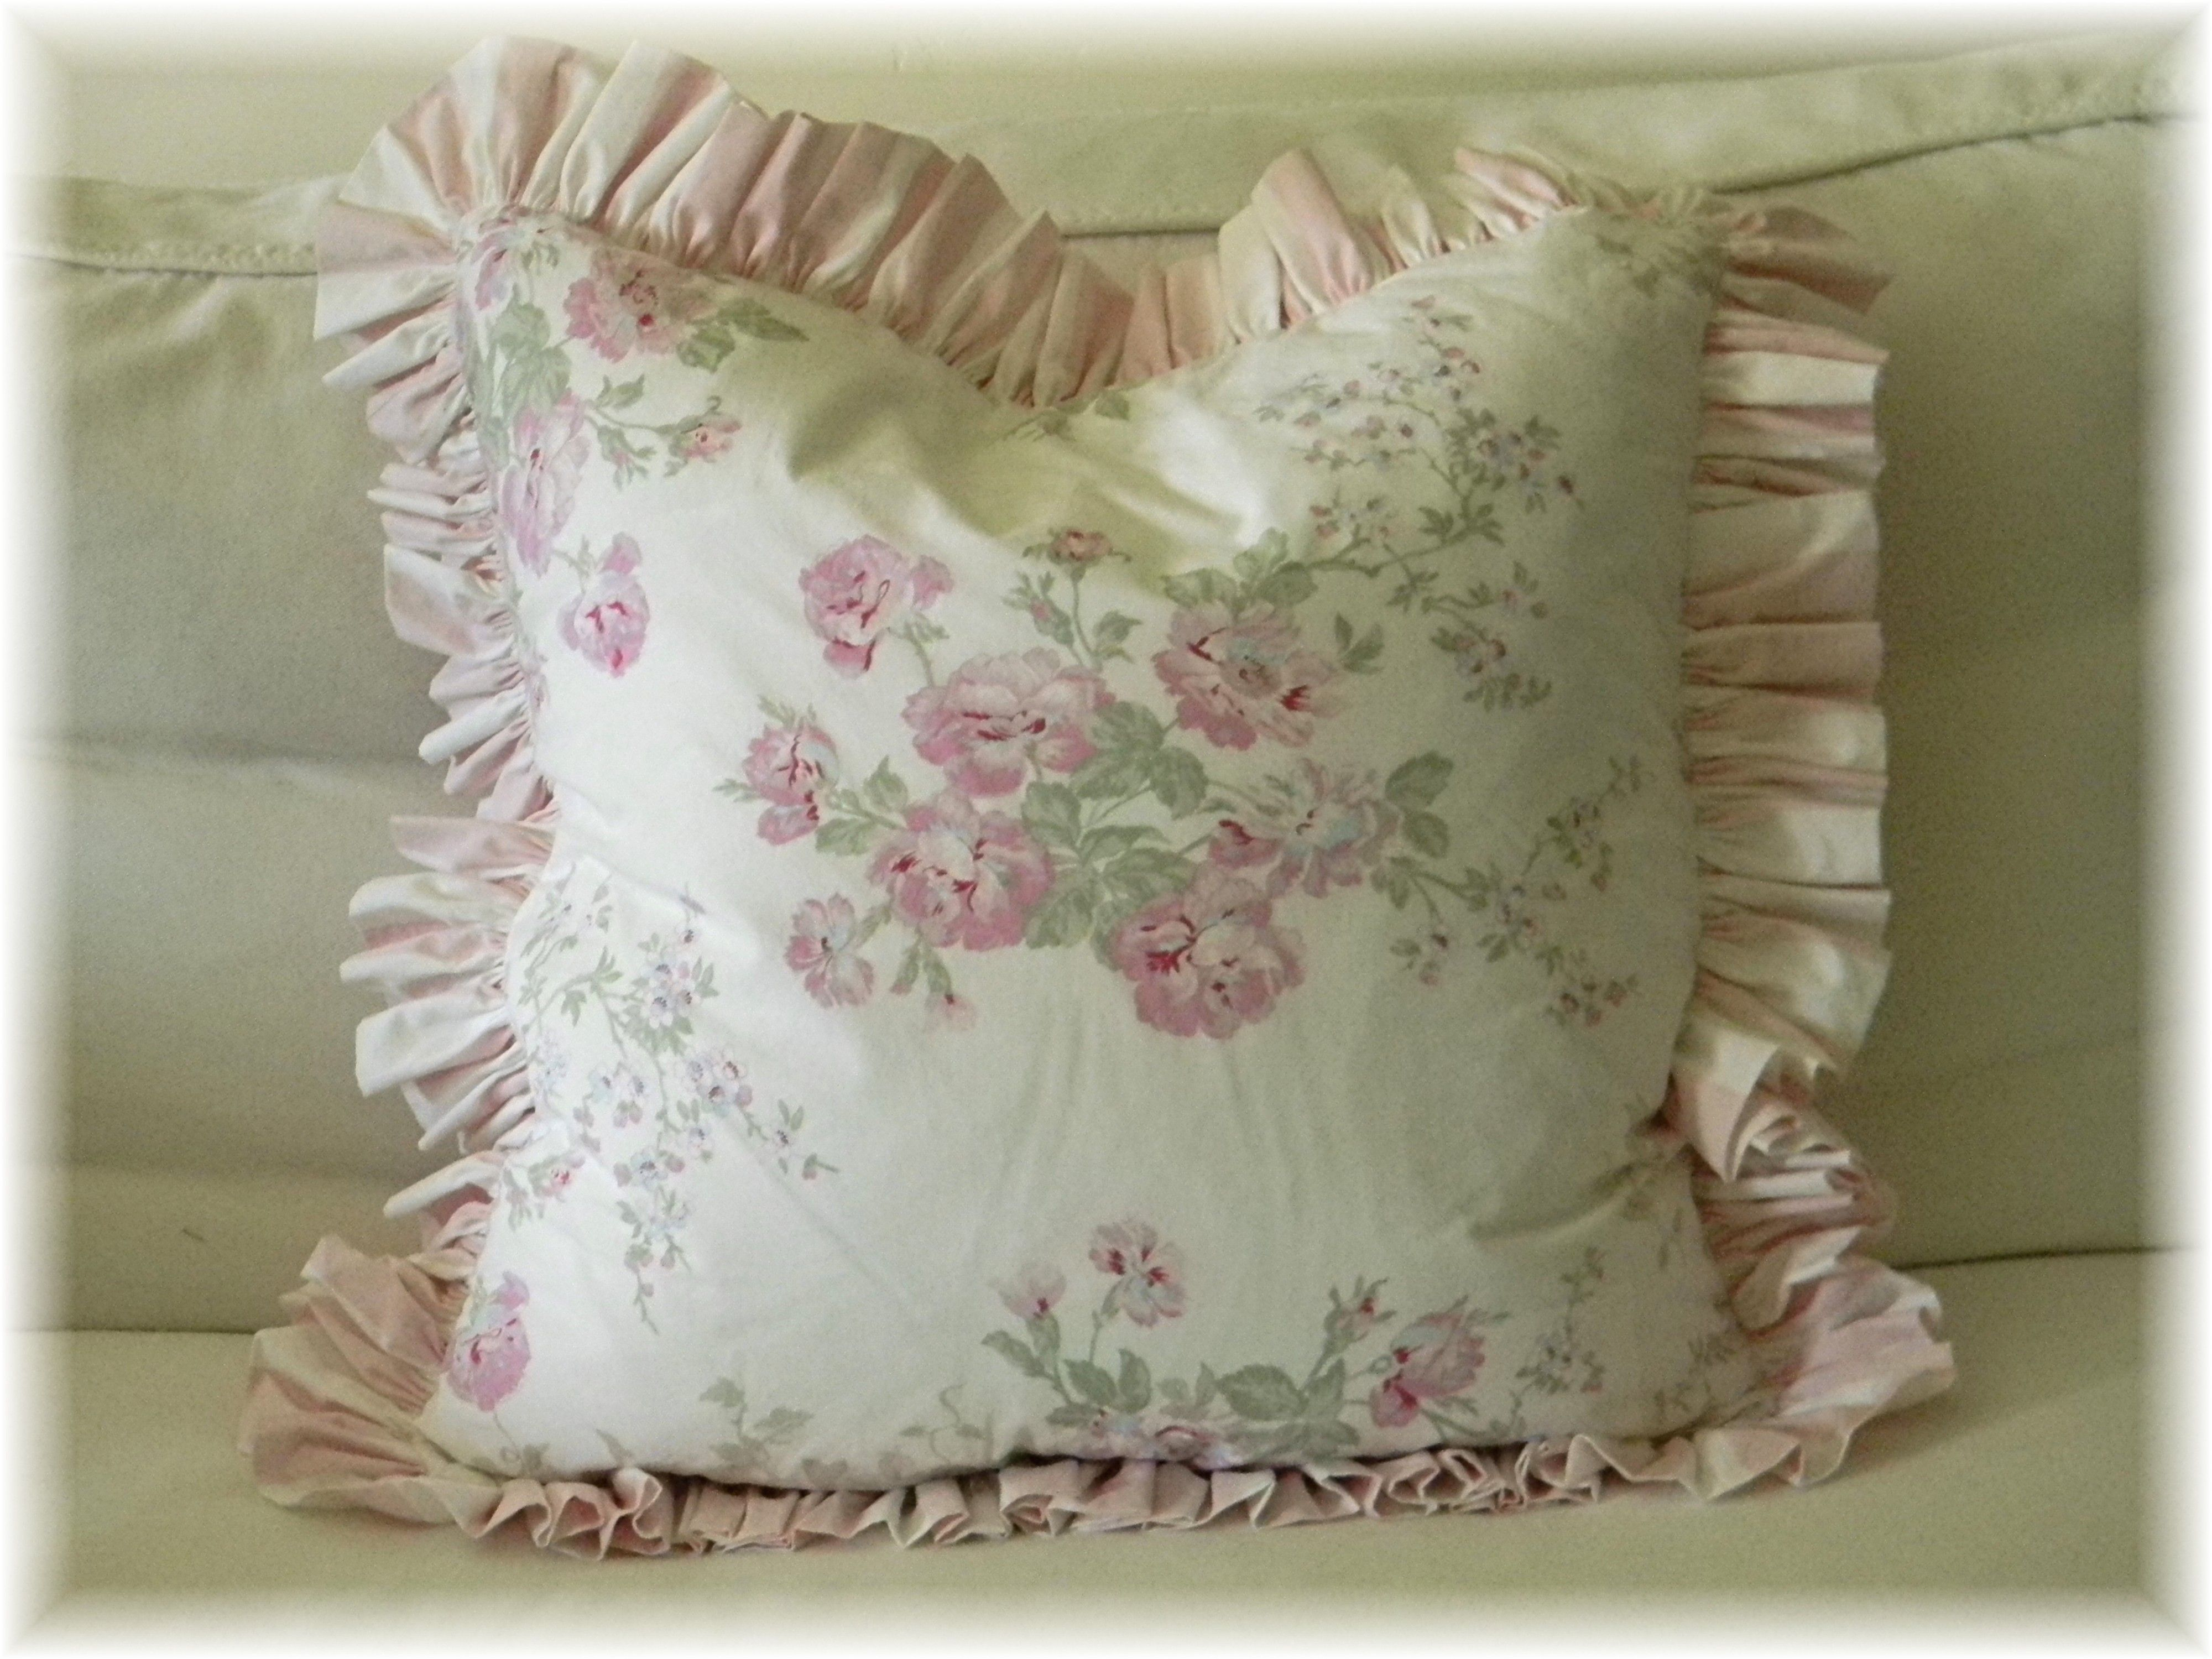 decorative pillow pink design complete overlay search pin shabby lace pretty beige google pillows chic roses white victorian